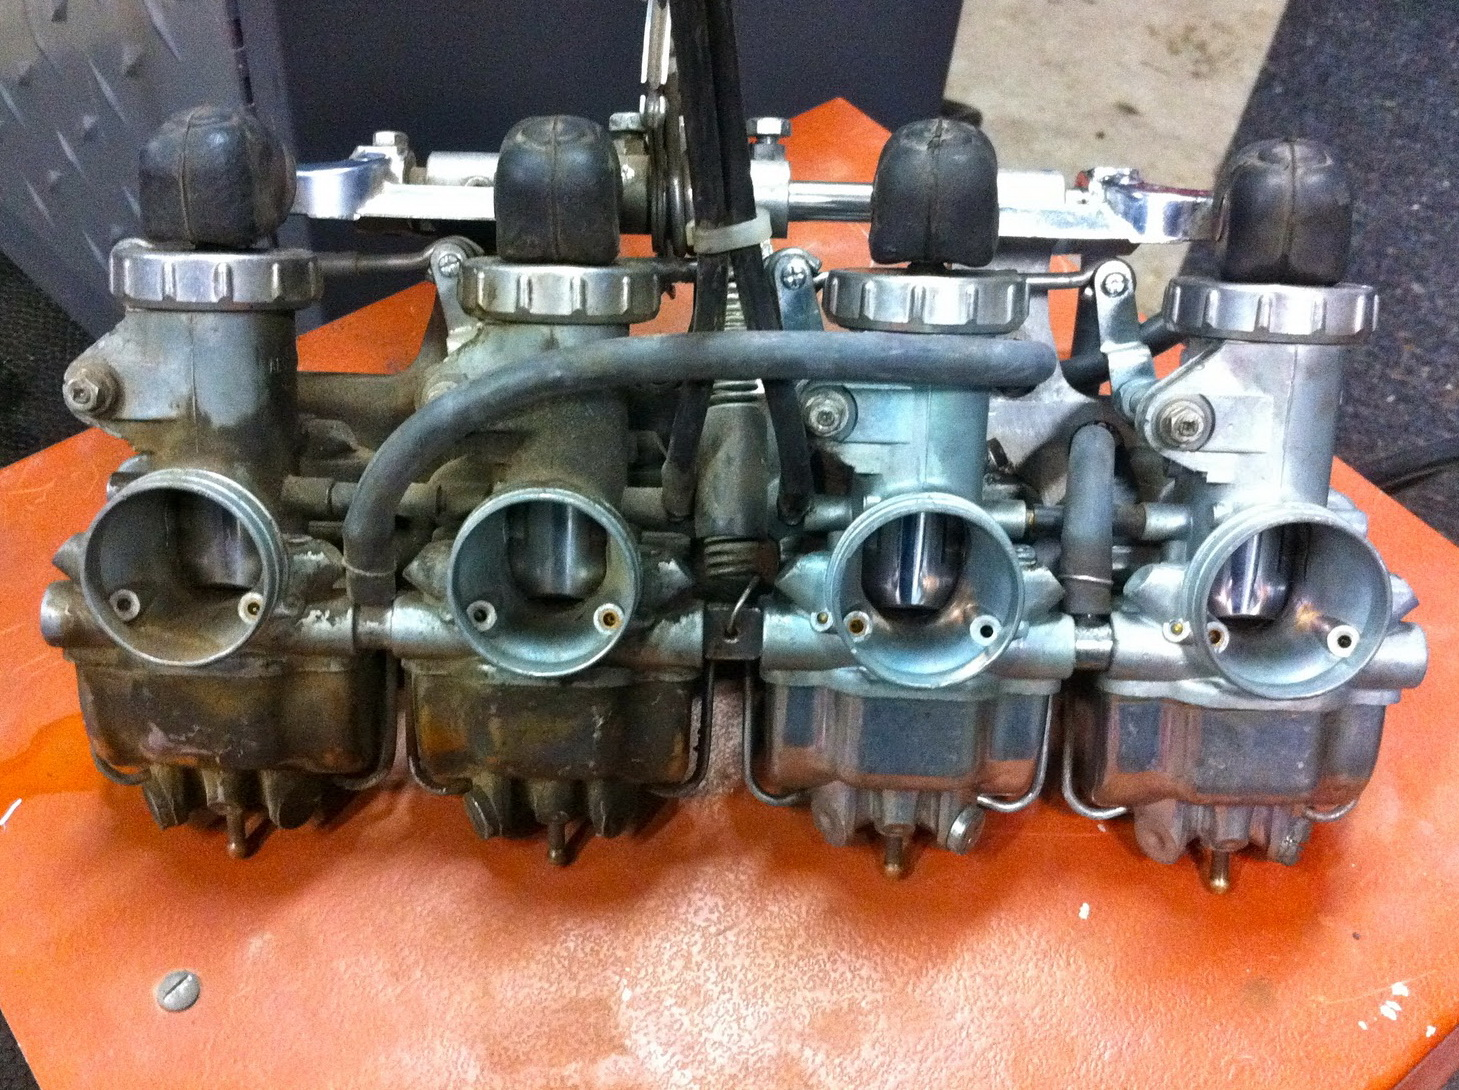 What does the carburettor do